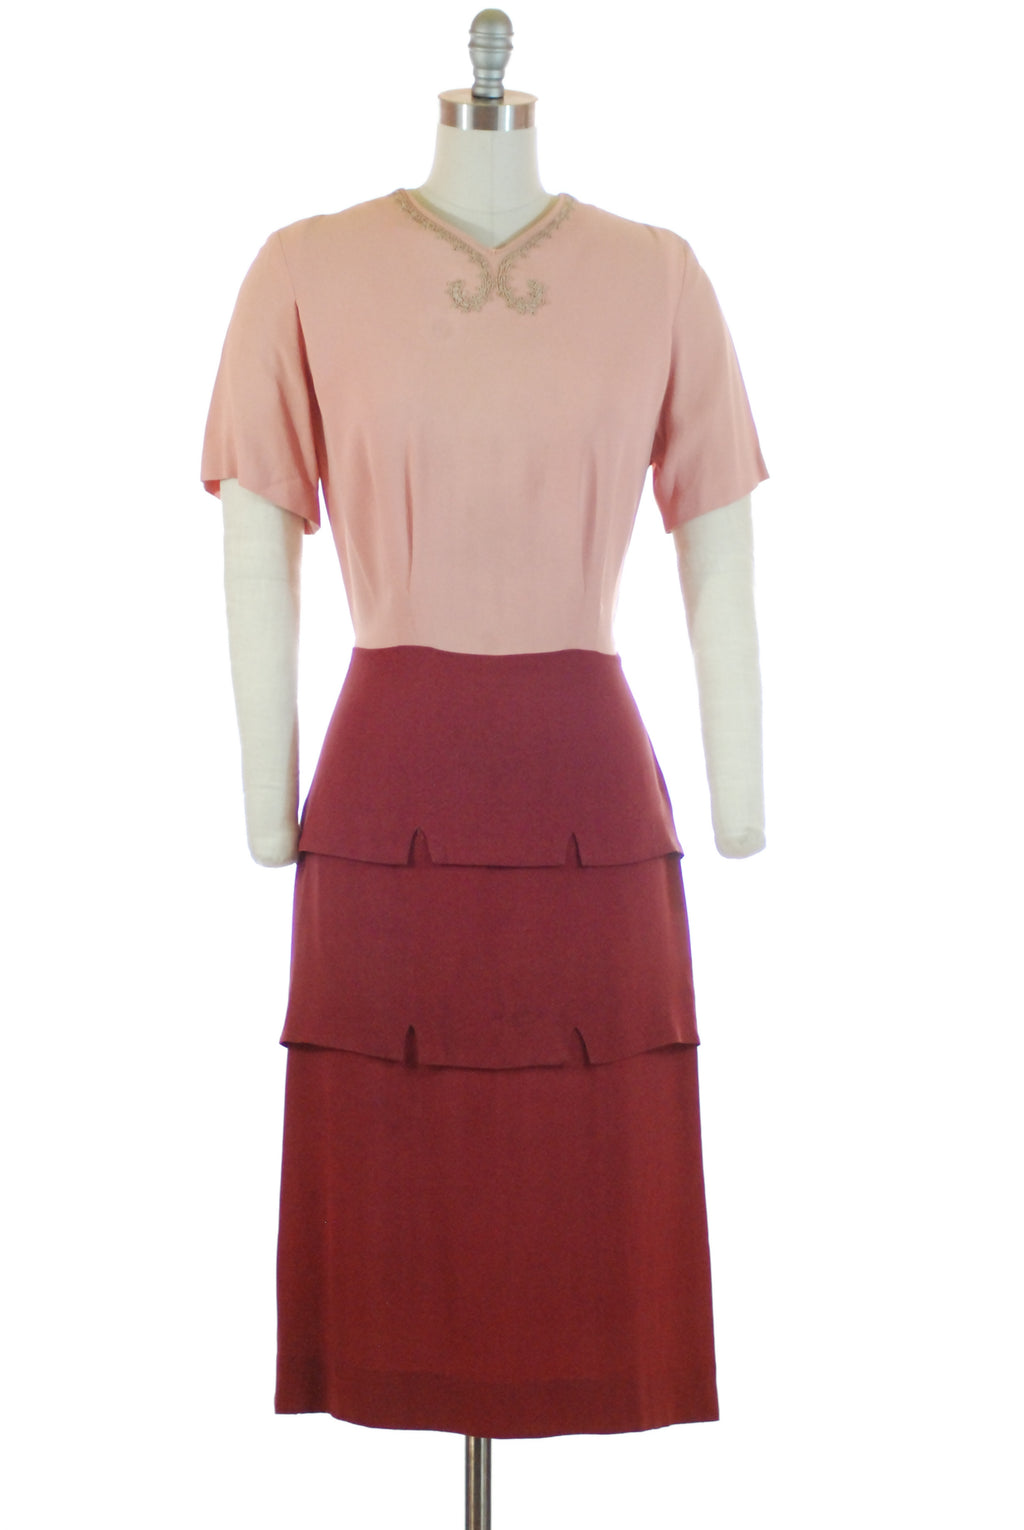 Fantastic 1940s Colorblock Dress Set with Soutache Accents and Cropped Jacket